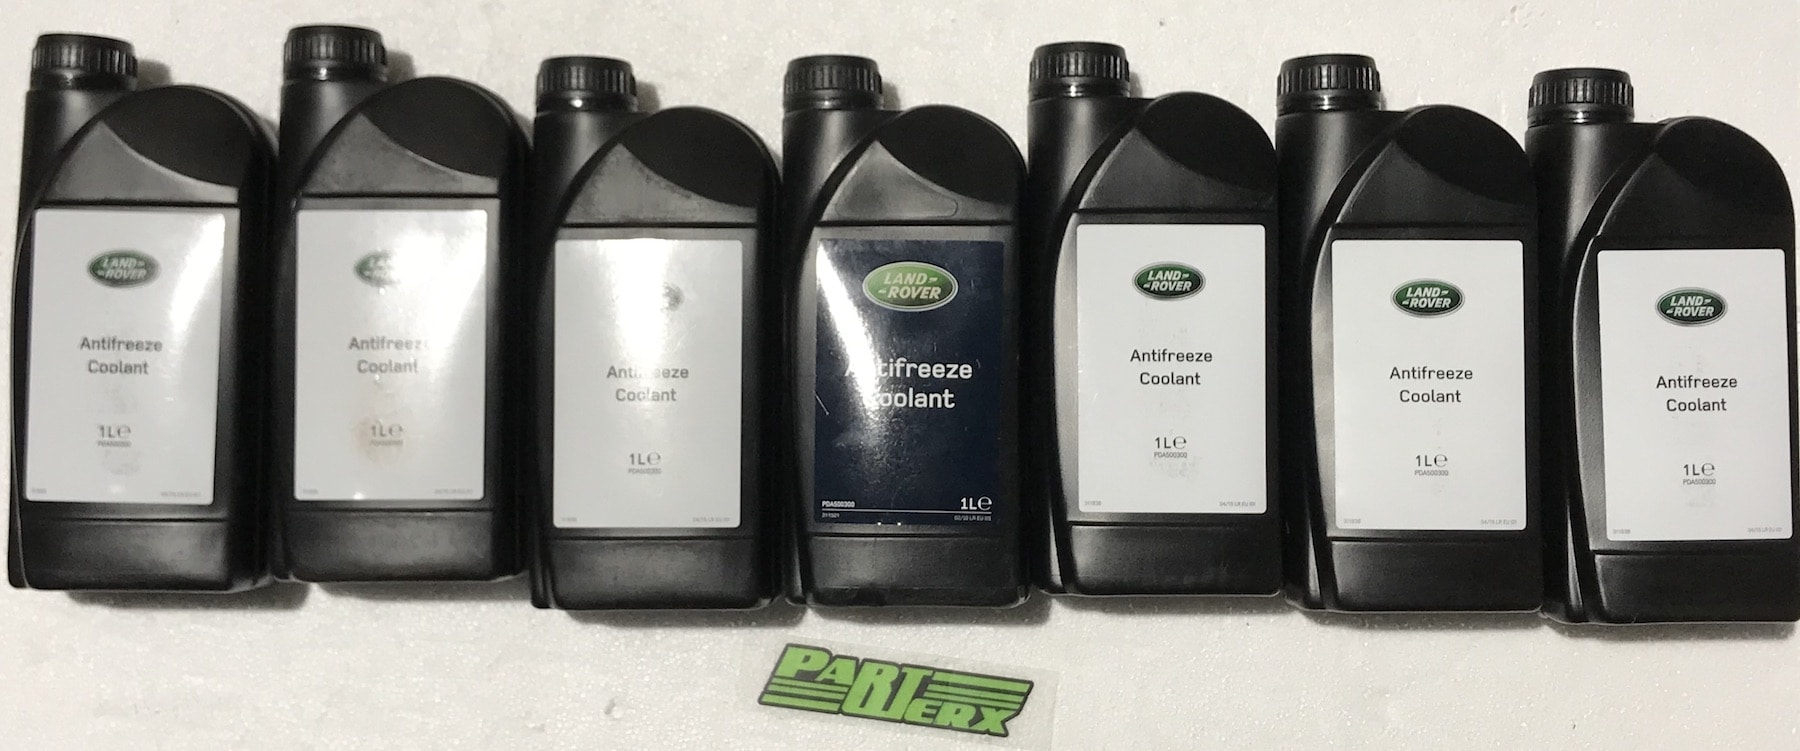 Land Rover Range Rover MK3 L322 Engine Antifreeze Coolant Vogue Autobiography 4.4 V8 5.0 SC Genuine OEM LR Parts